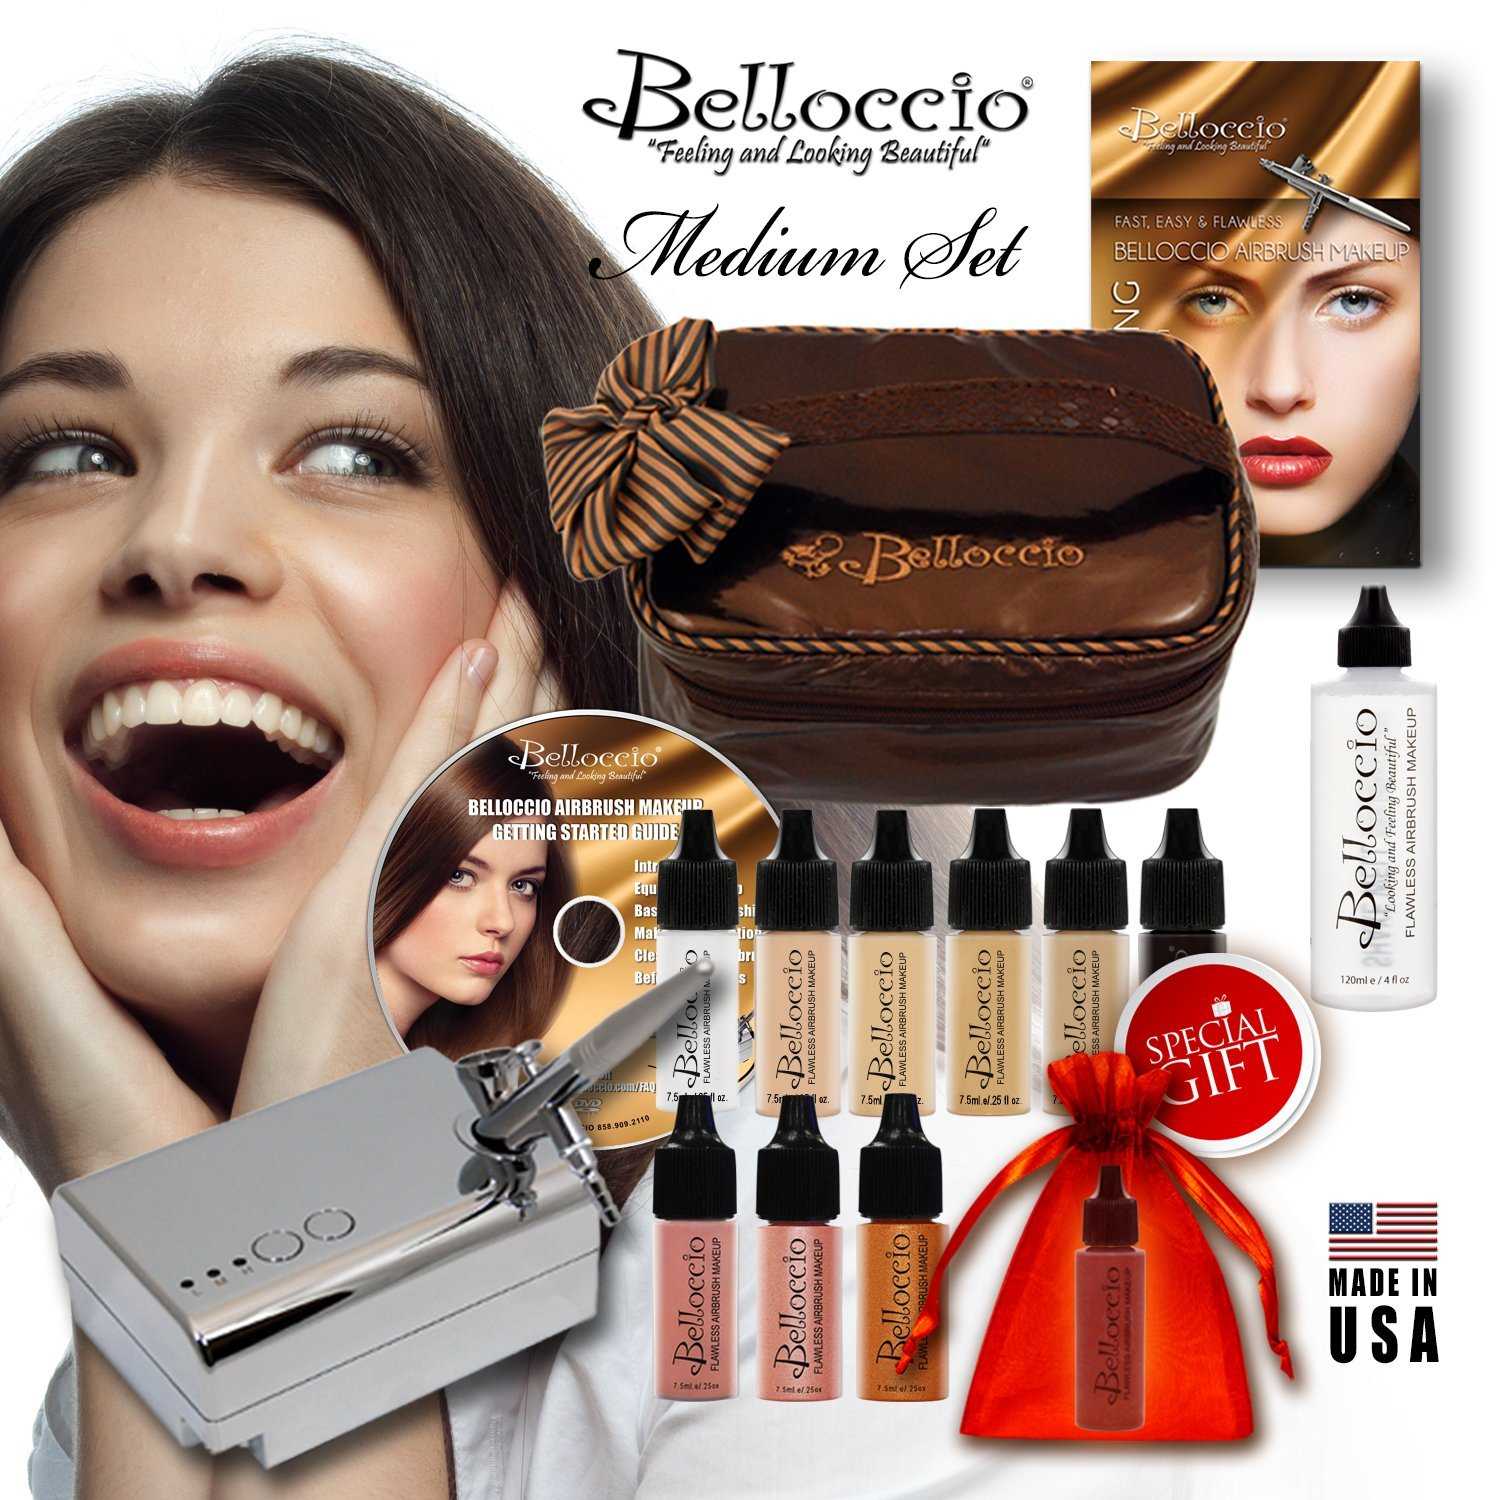 Belloccio are a respected and well-known brand in the airbrush makeup kit space.